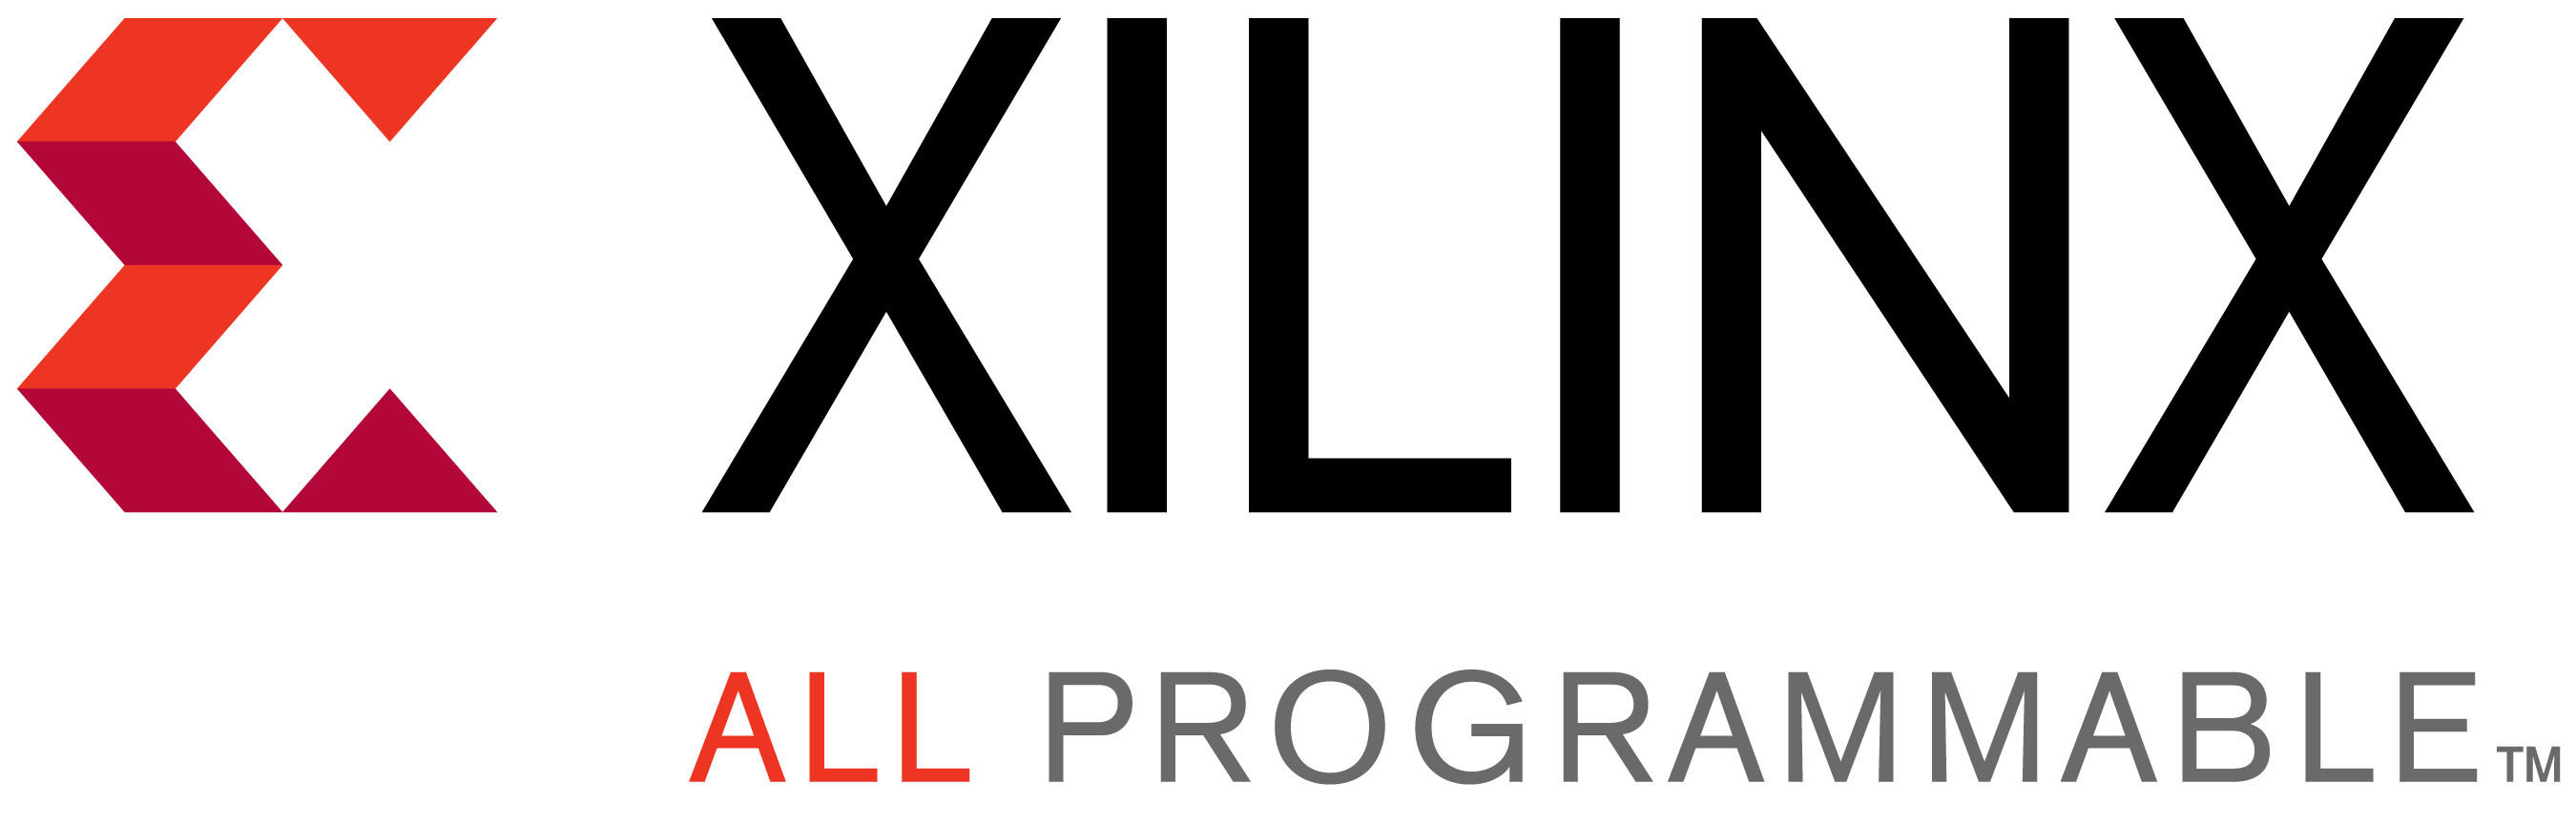 Xilinx Demonstrates Next Generation Video Over IP, Processing and Connectivity for the Broadcast and Pro A/V Industry at ISE 2016